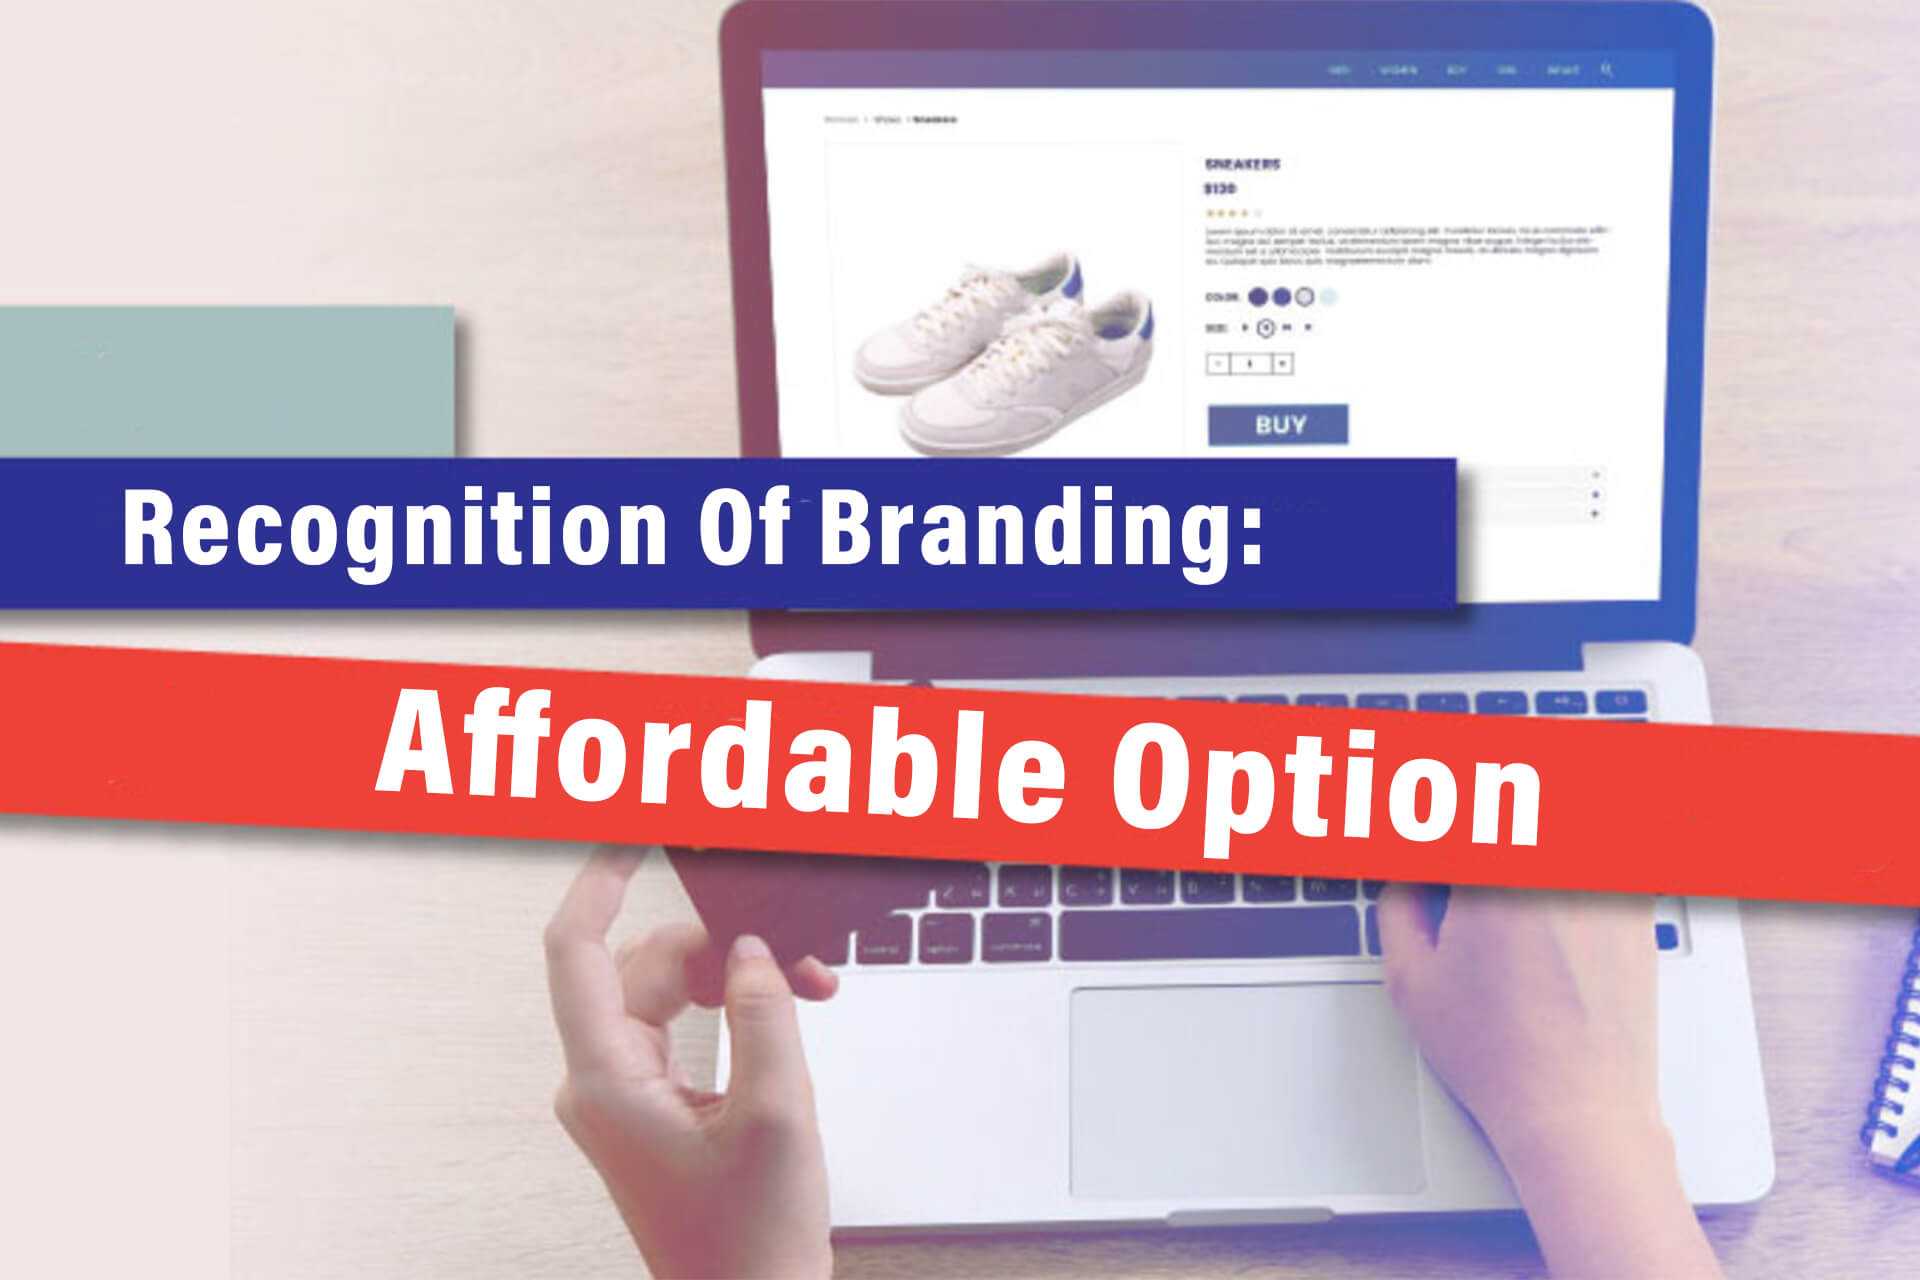 Recognition Of Branding: Affordable Option